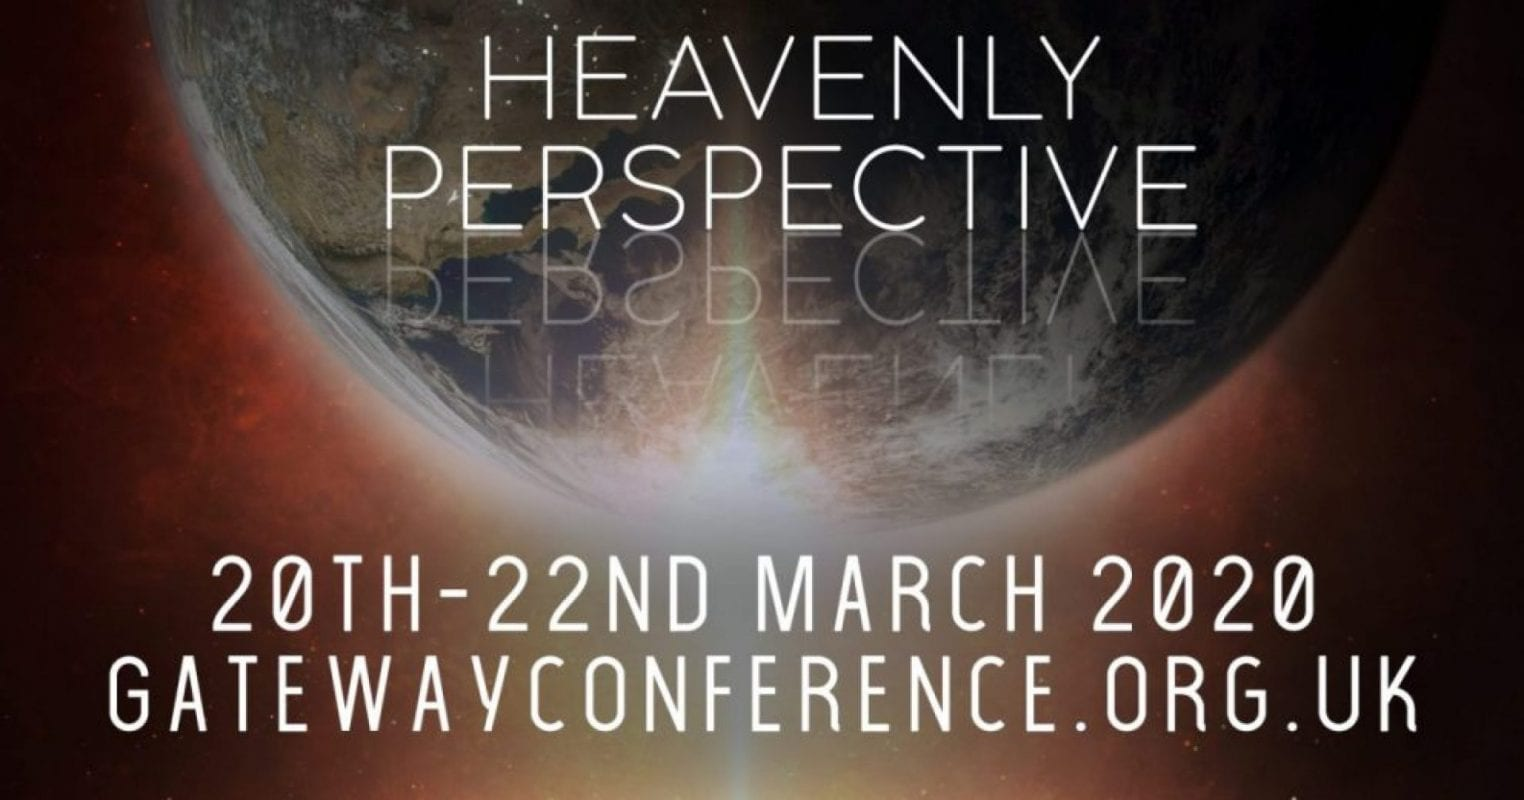 Gateway Conference